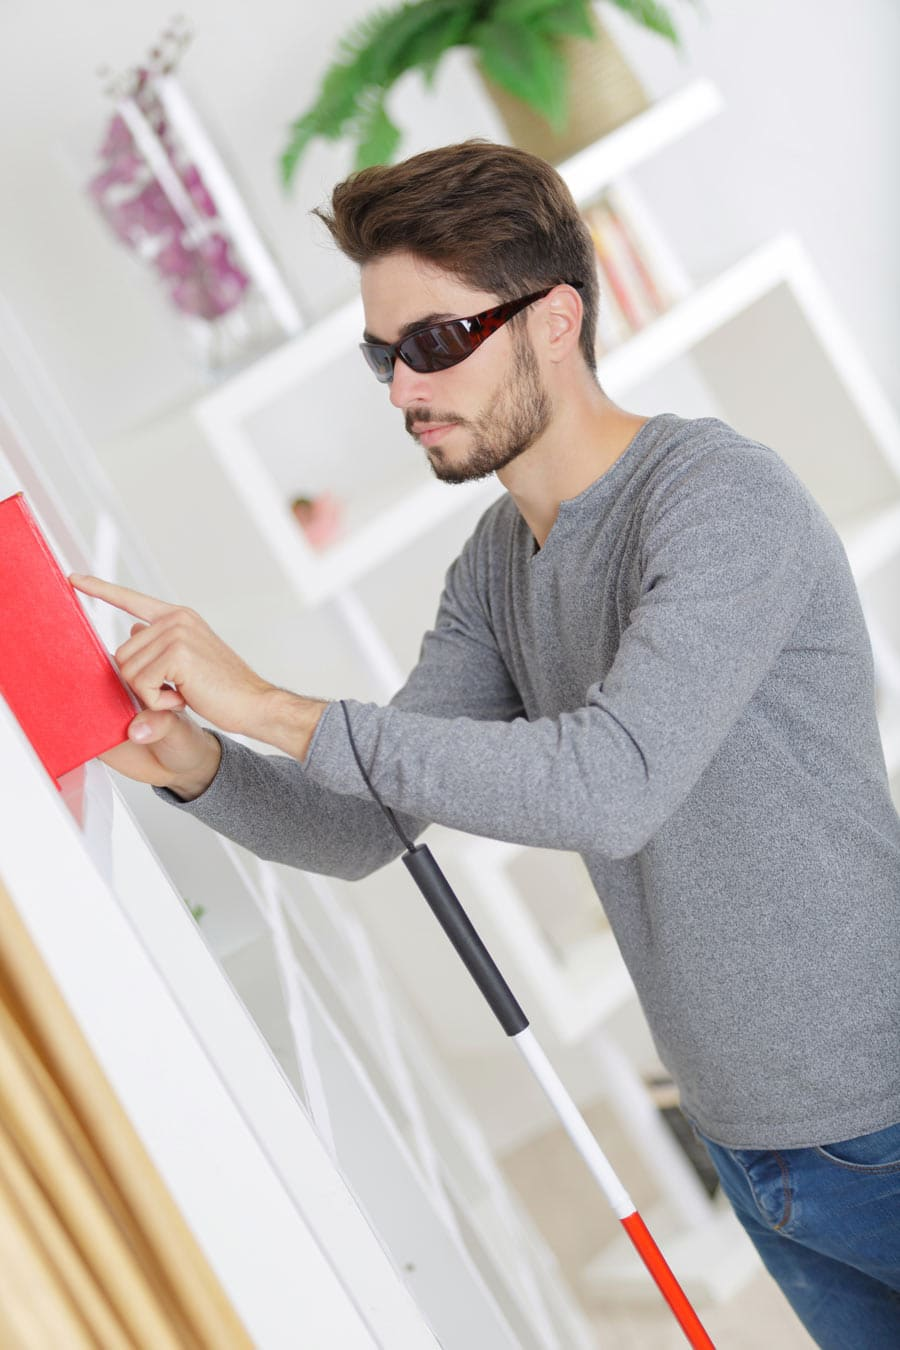 Dark-haired Blind man wearing wraparound sunglasses, folding cane looped around his arm, stands at a bookshelf and inspects the spine of a braille book